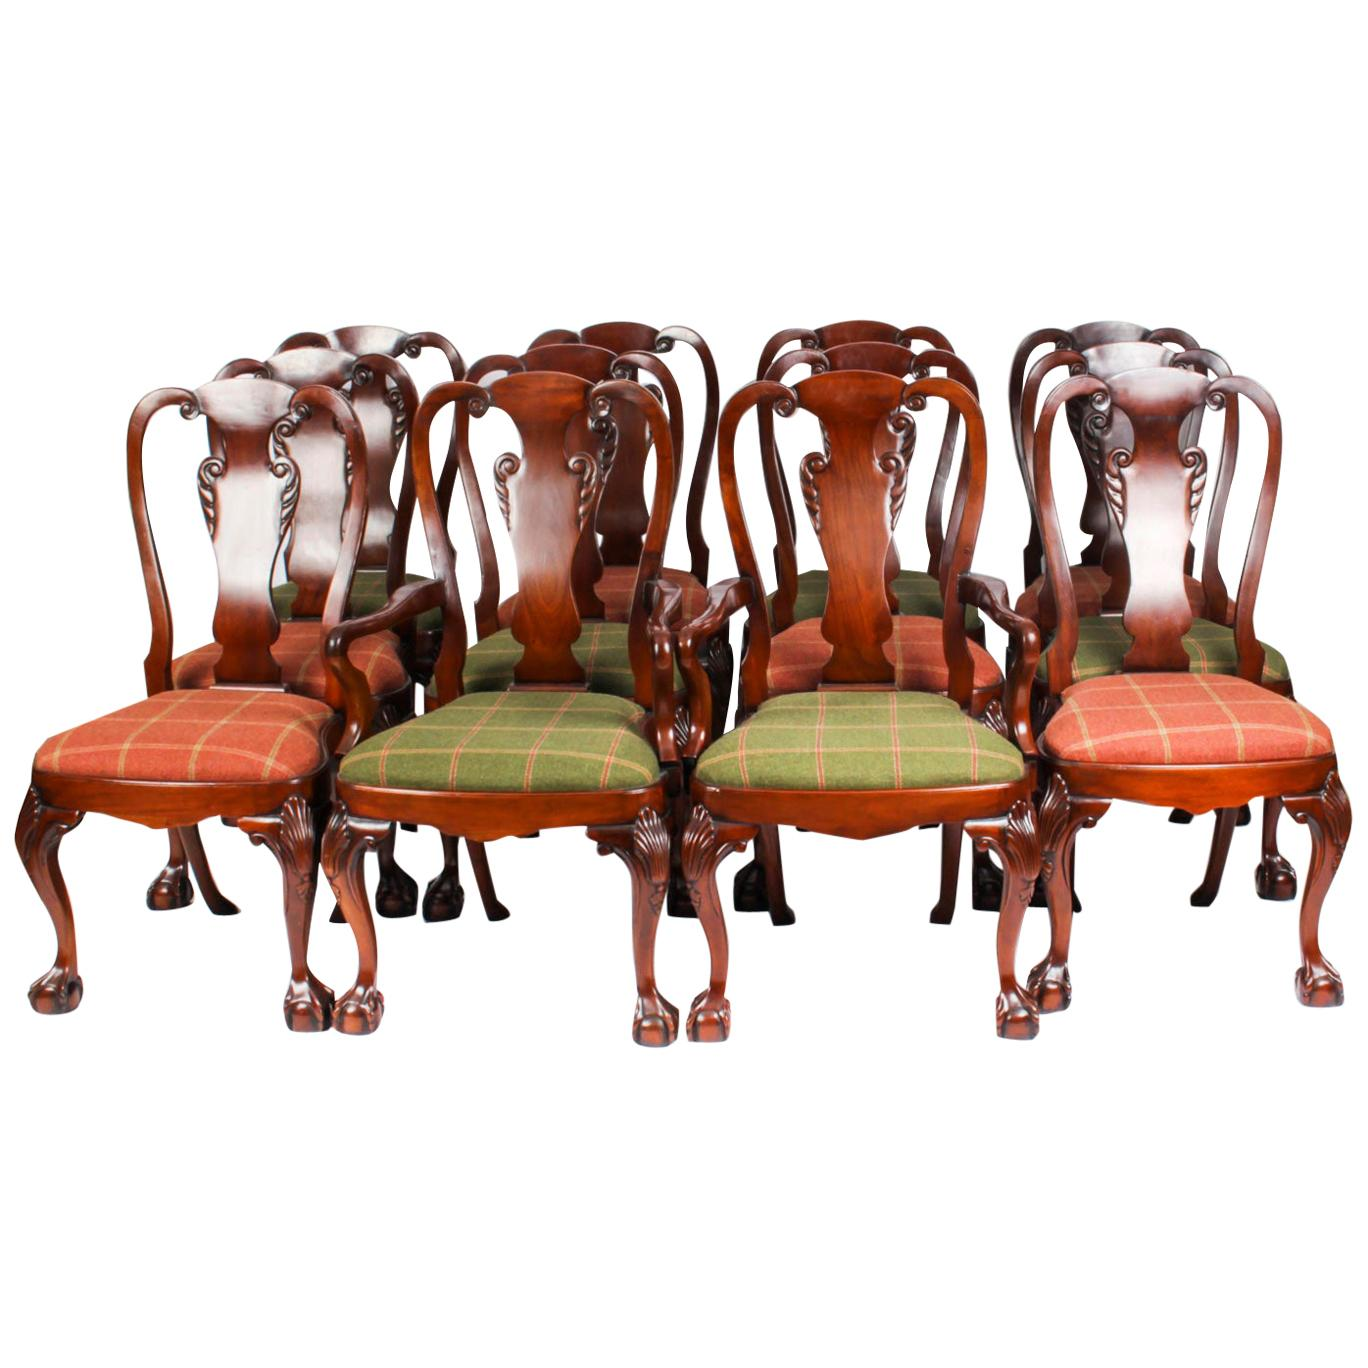 Vintage Set 12 Queen Anne Revival Mahogany Dining Chairs, Mid 20th Century